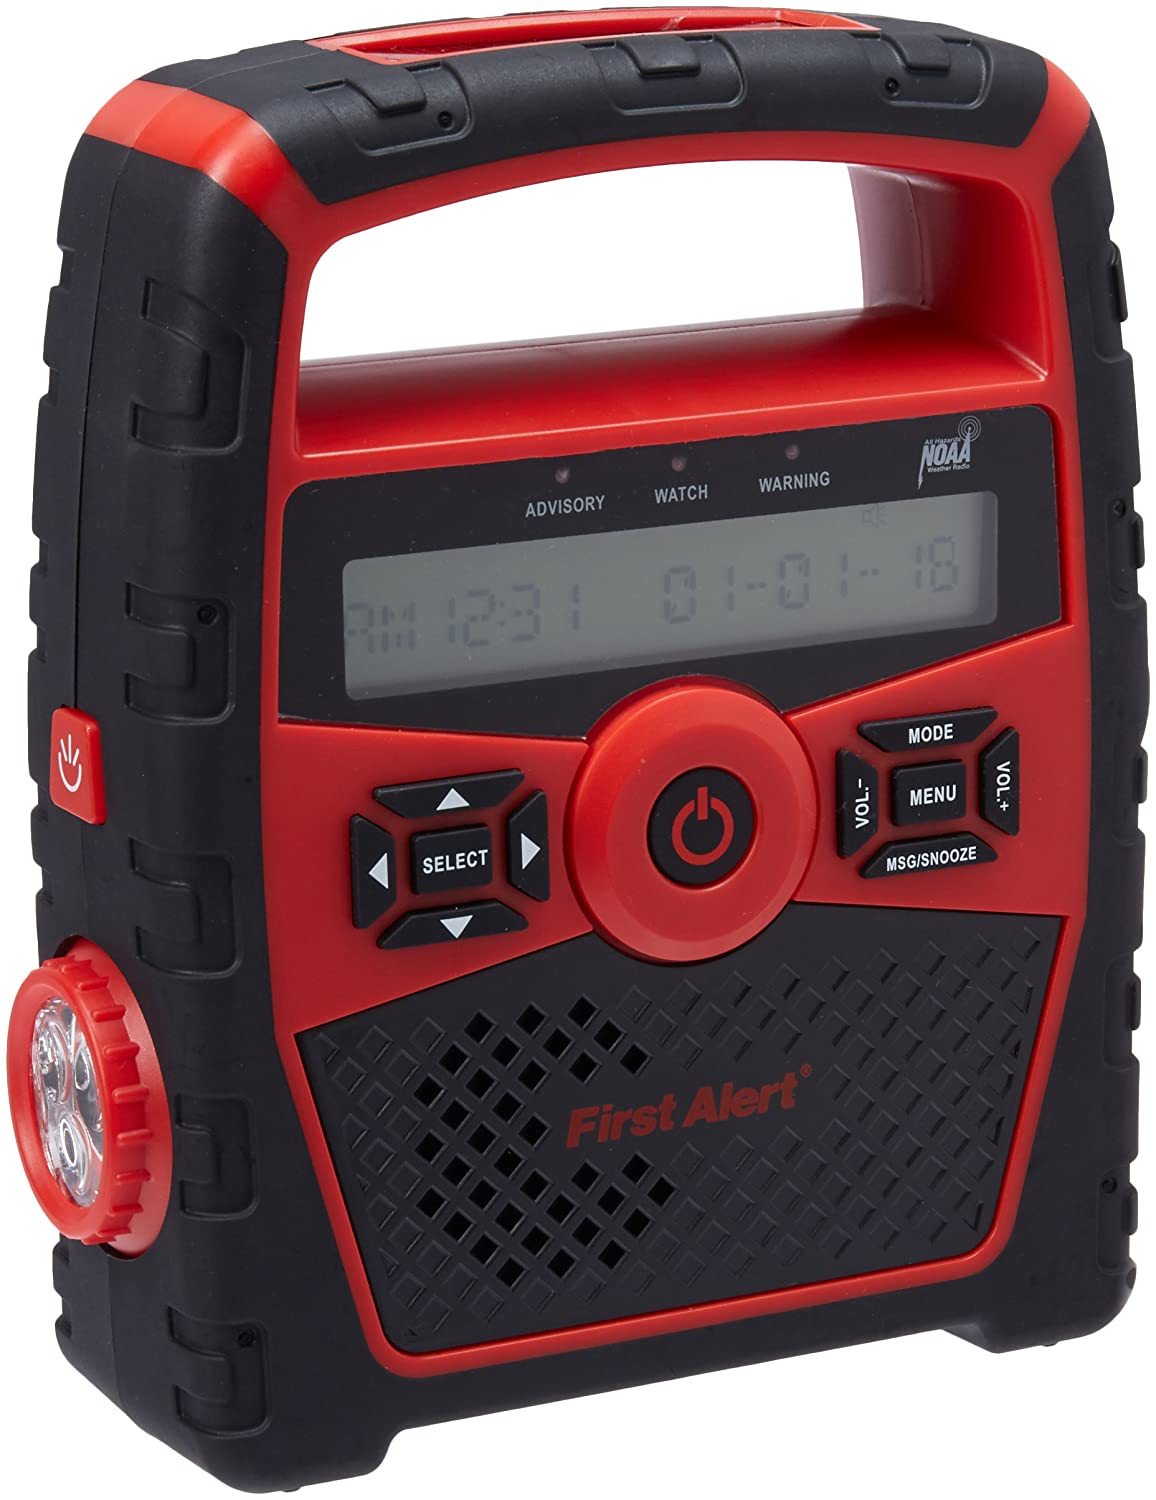 First Alert SFA1180 Portable AM/FM Weather Band Radio with Clock and S.A.M.E. Weather Alert